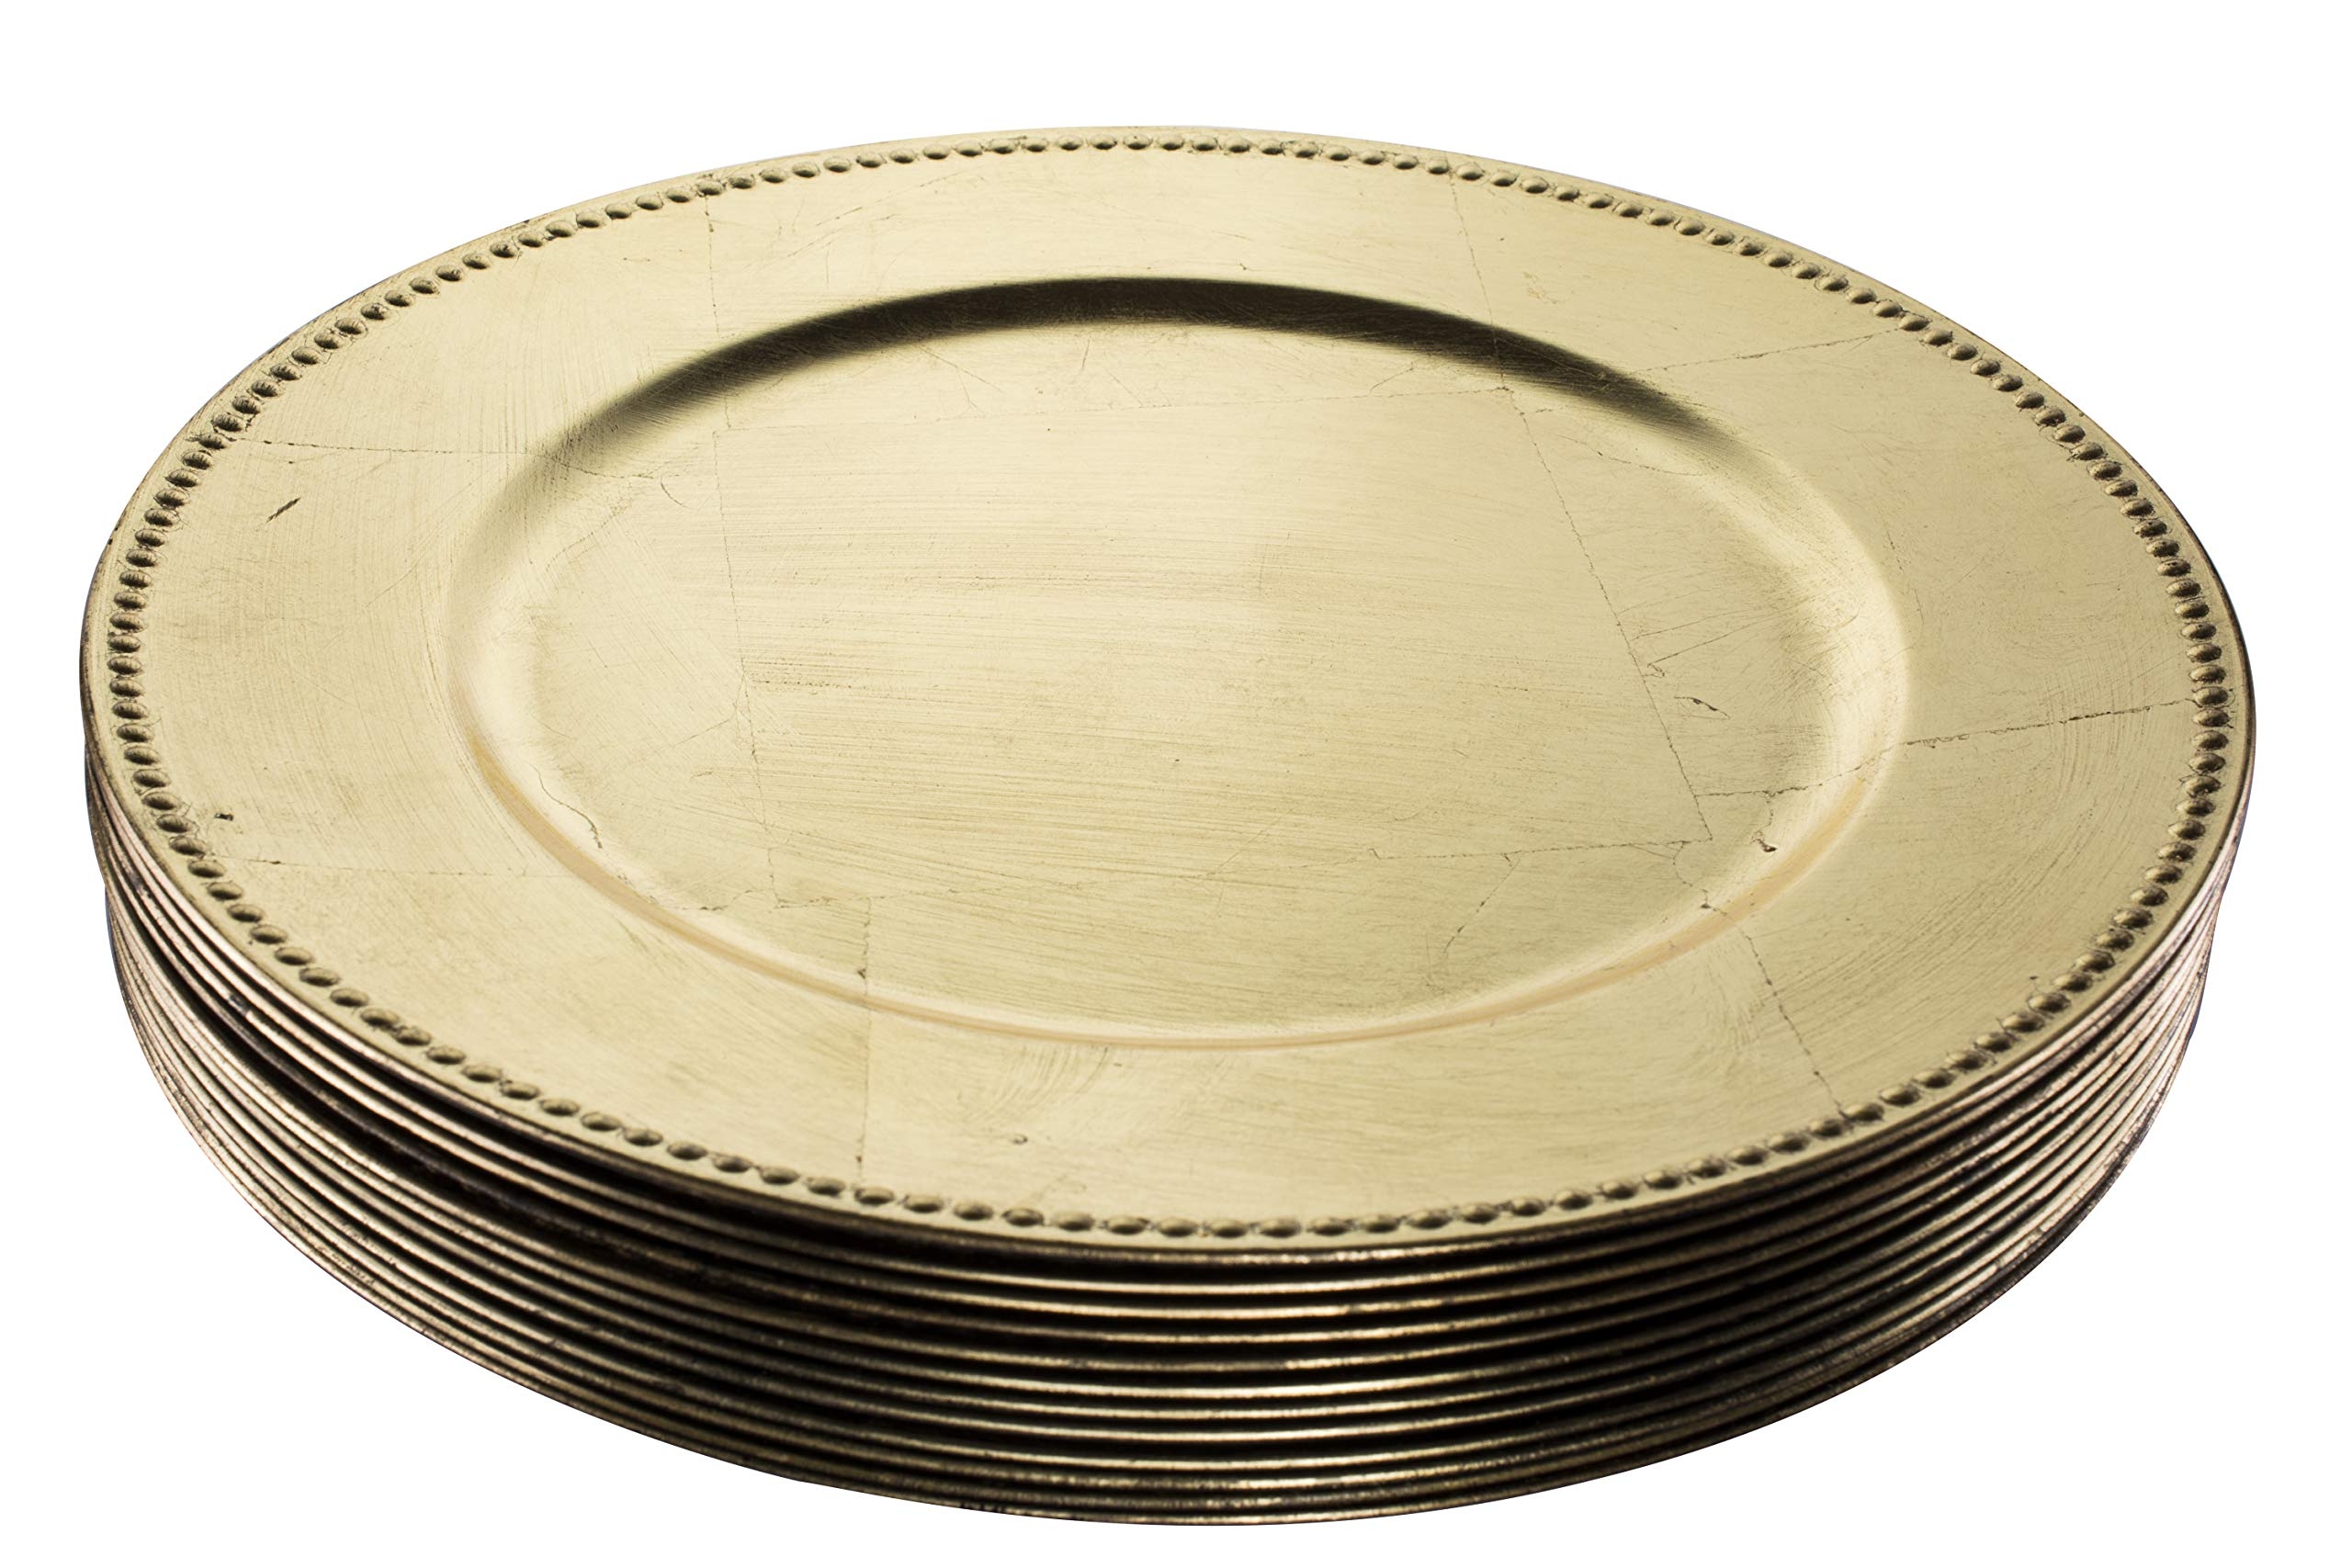 Simply Home USA 13'' Plate Charger Gold Beaded Round Premium Finest Quality, Pack Of 12